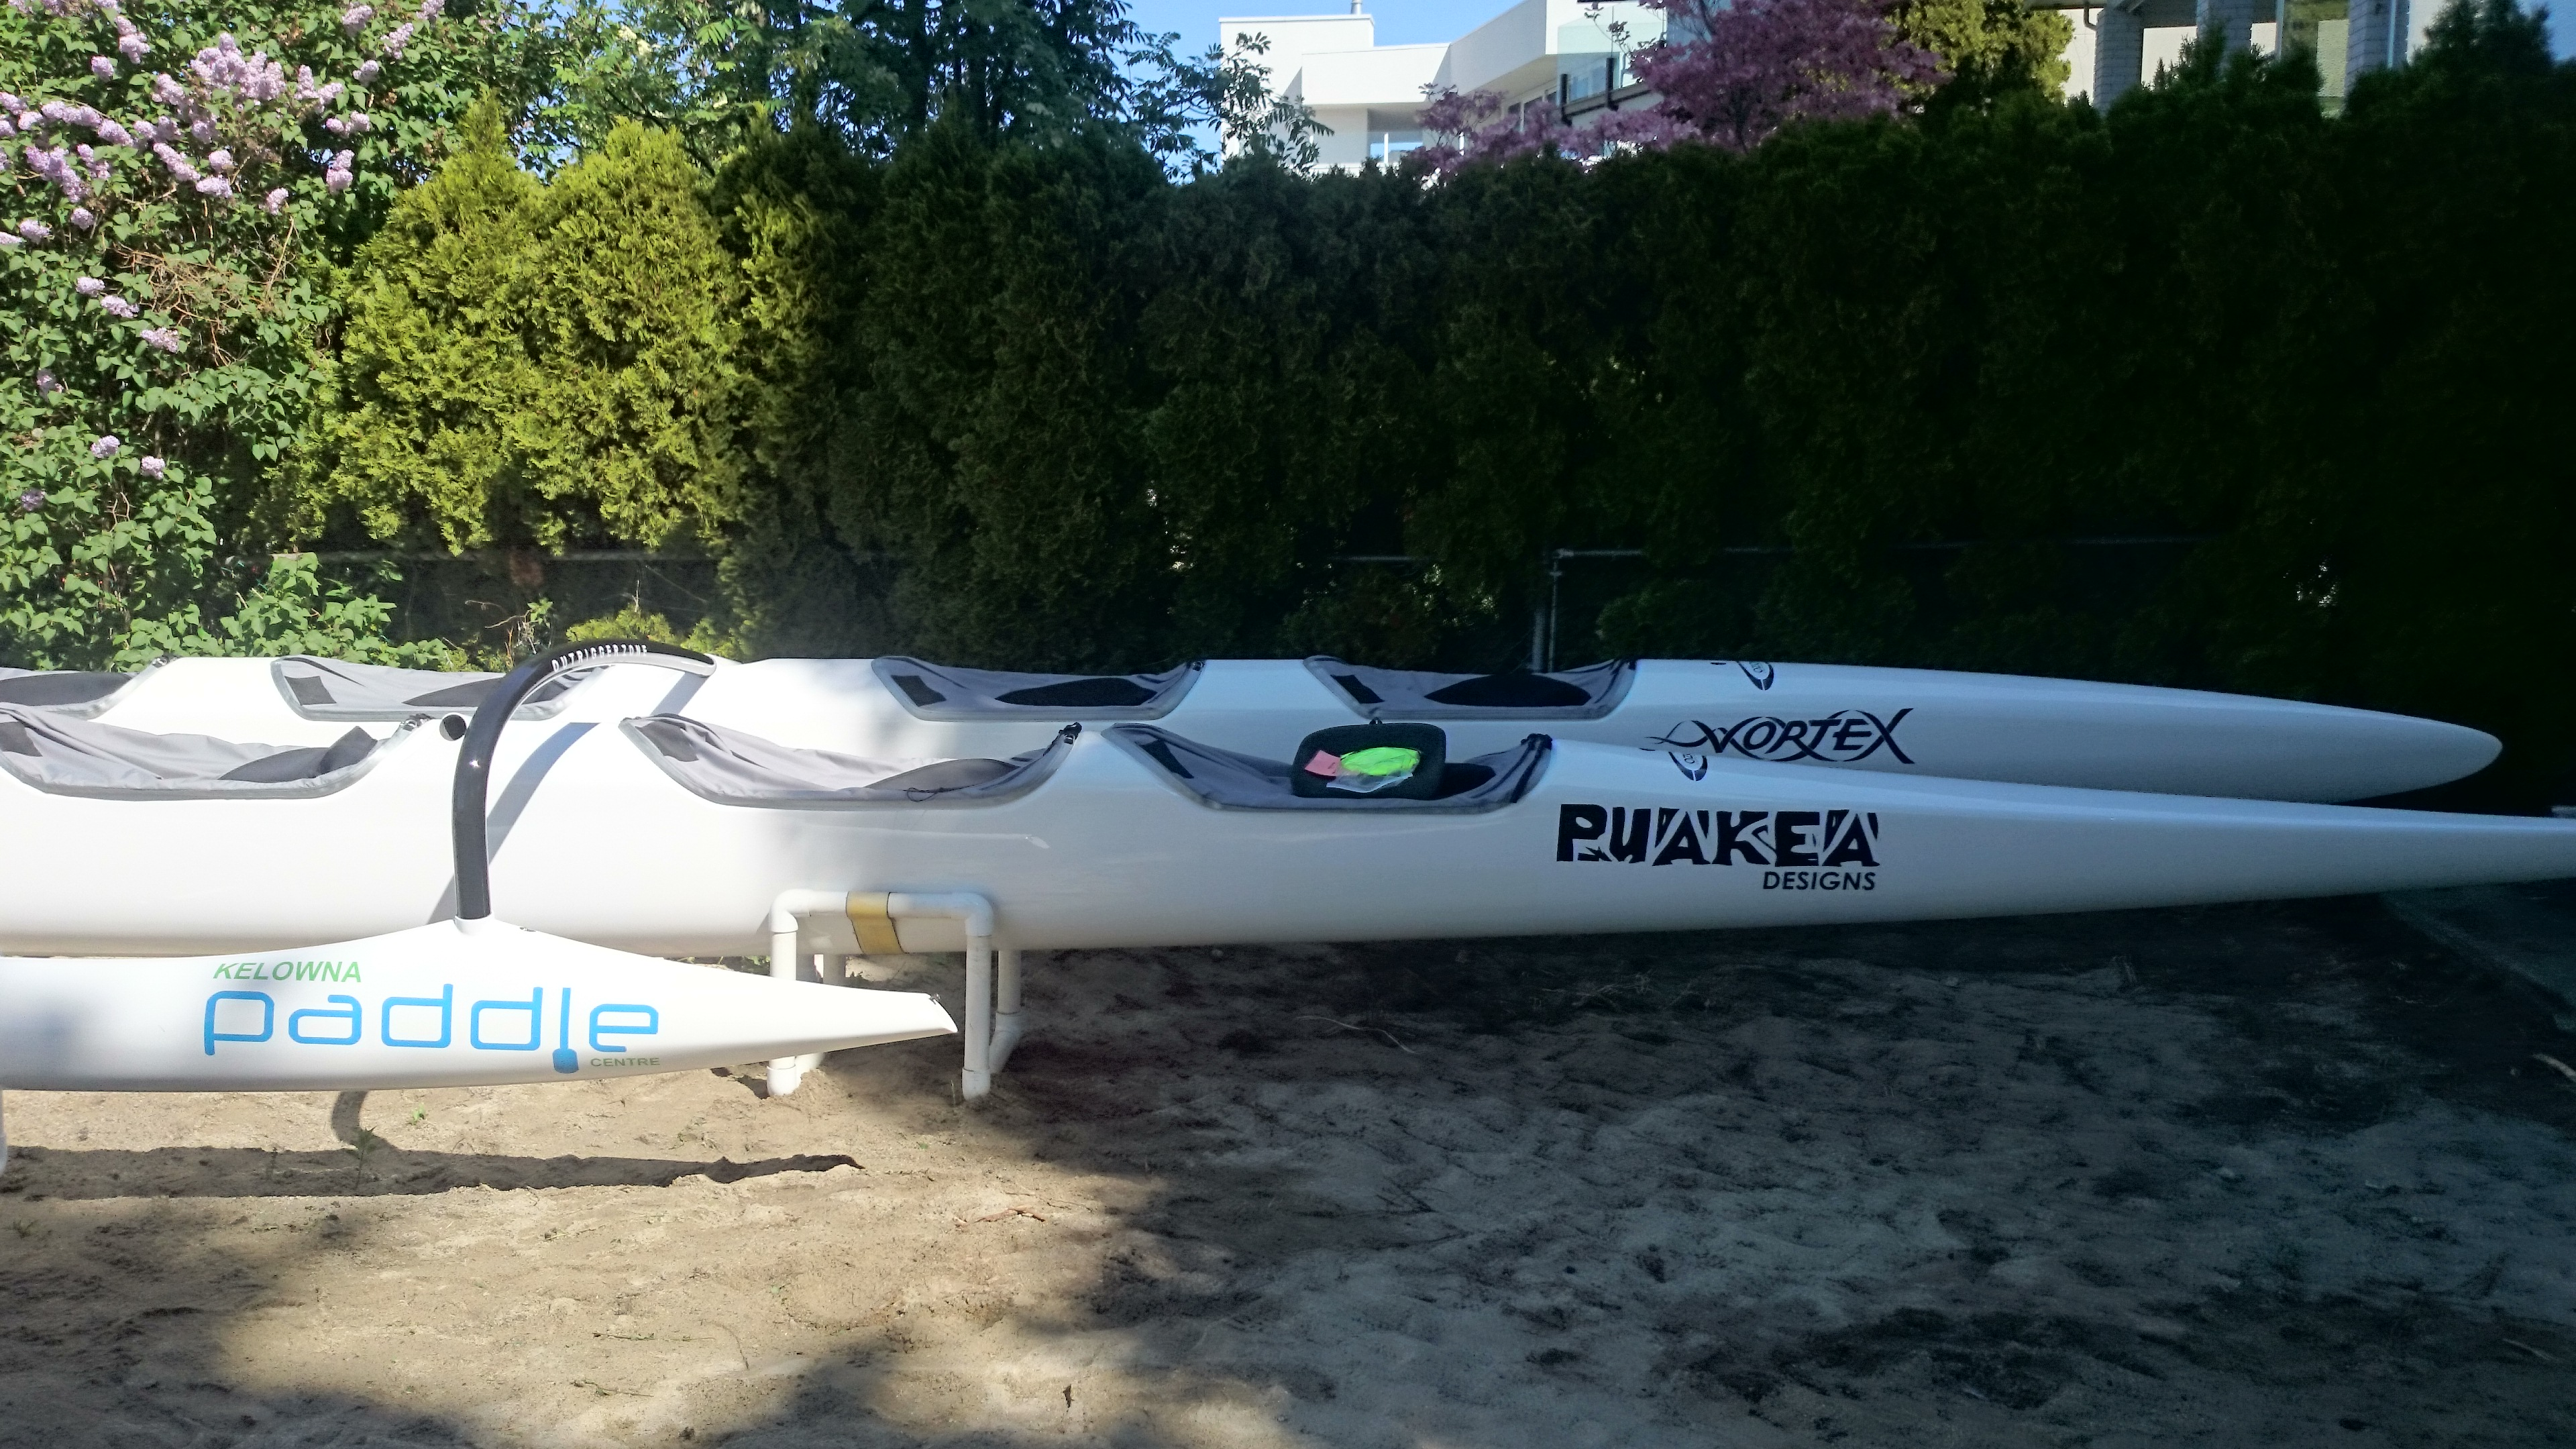 A trio of unlimited OC6s for Kelowna Paddle Centre